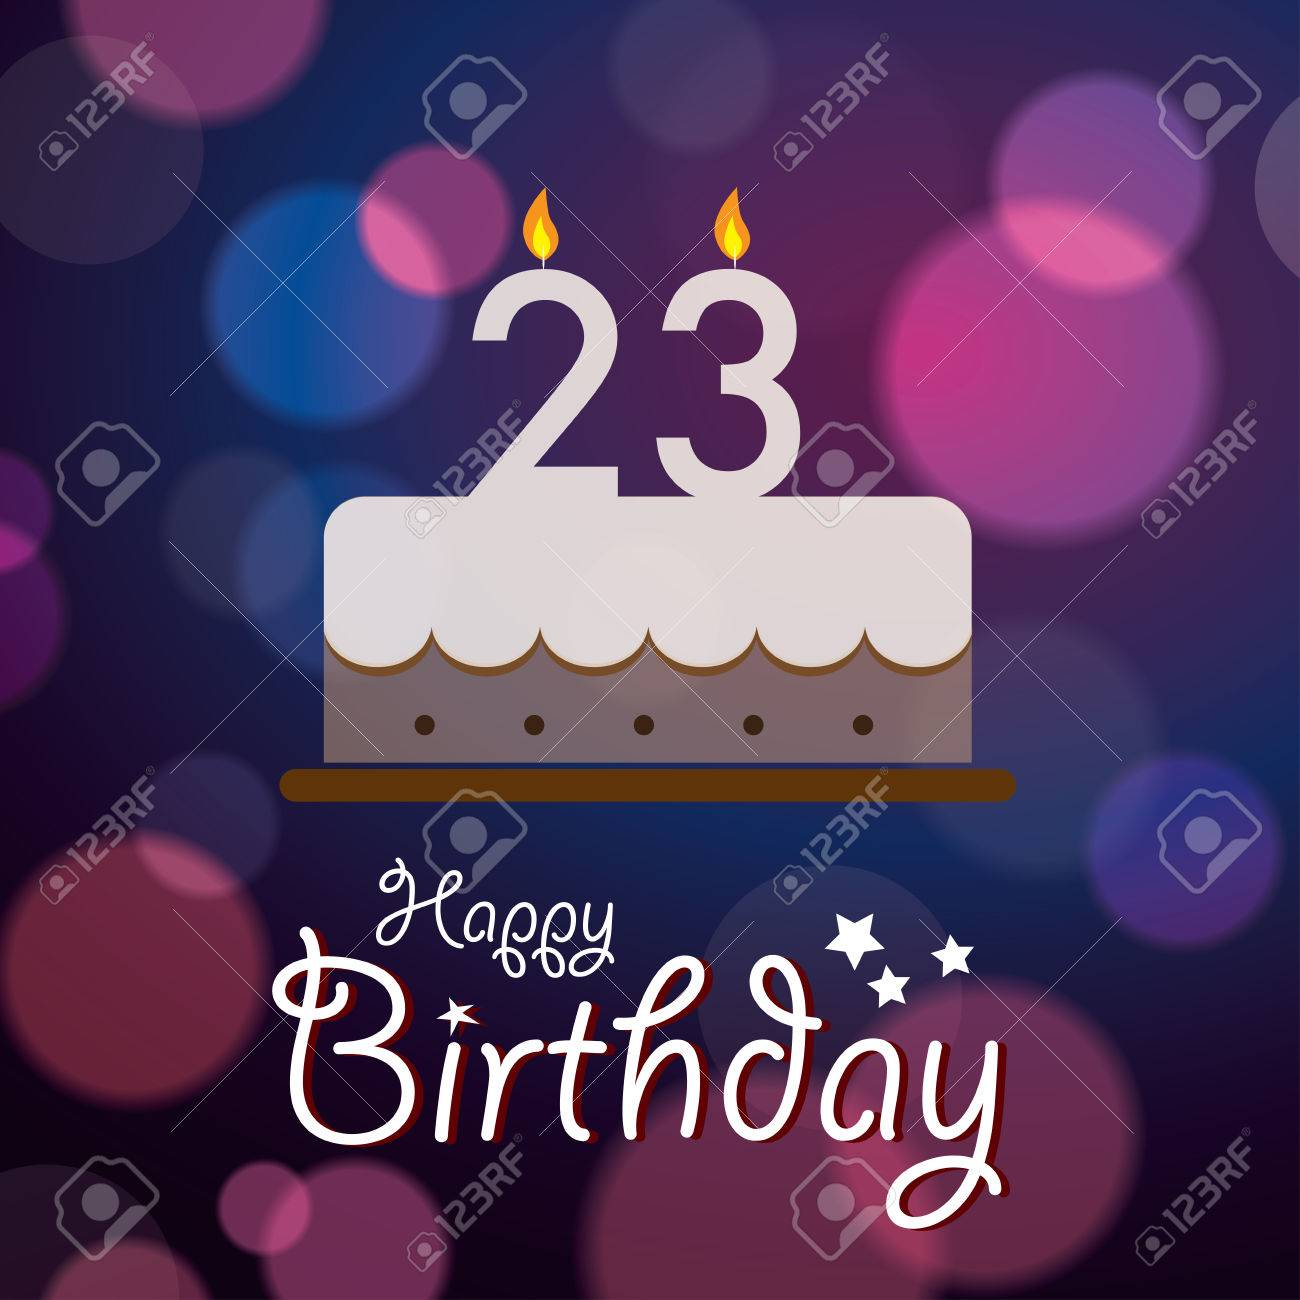 Happy 23th birthday bokeh vector background with cake royalty free happy 23th birthday bokeh vector background with cake stock vector 28592906 thecheapjerseys Images